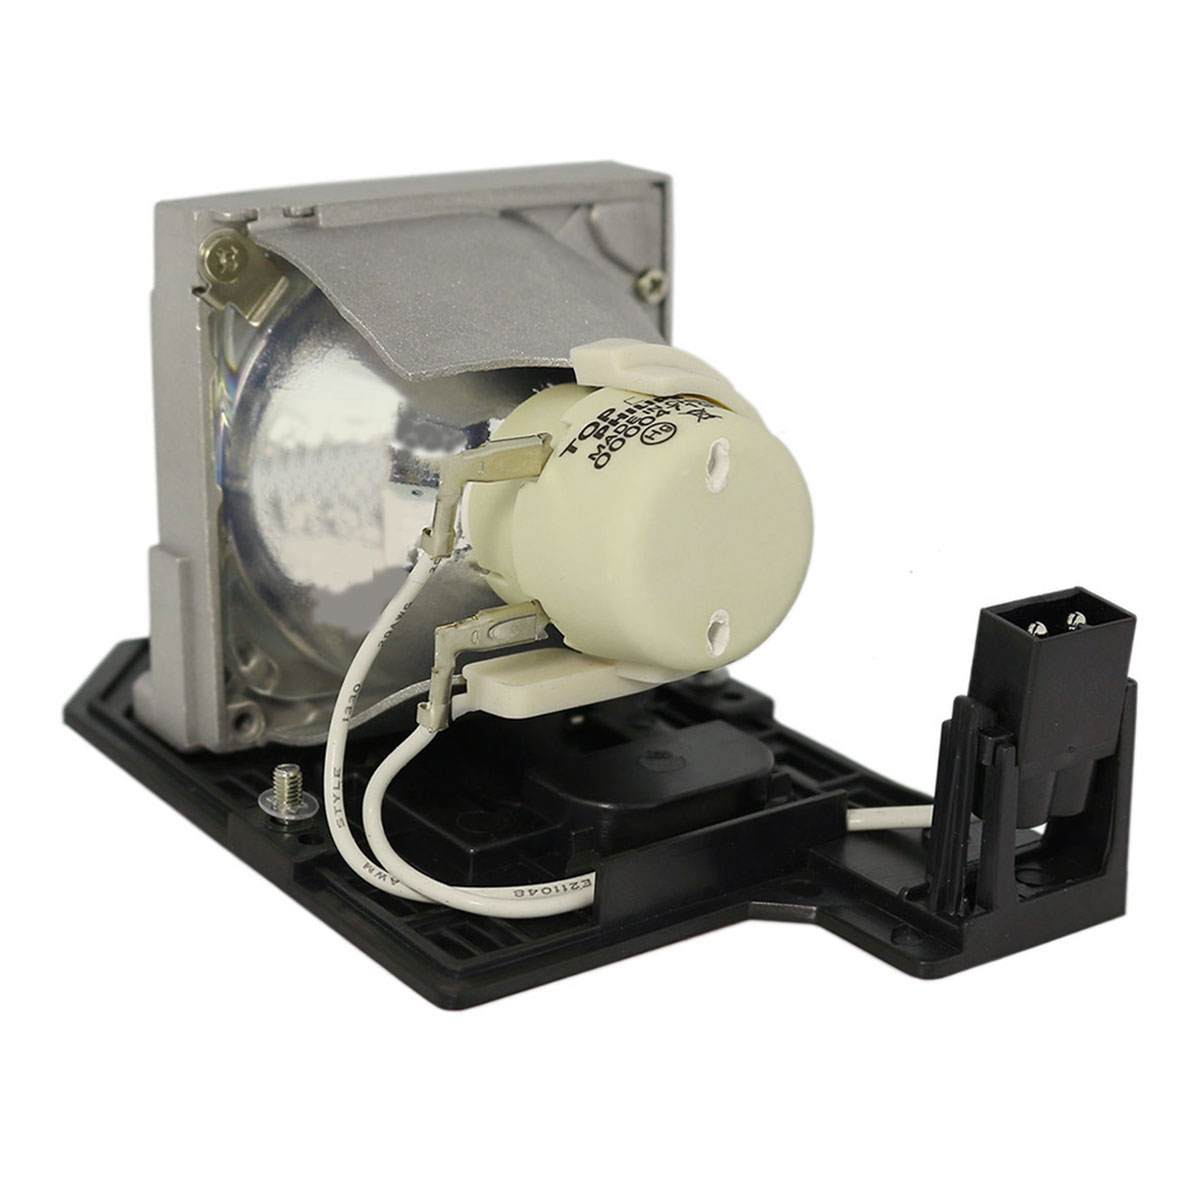 Original Philips Projector Lamp Replacement for Optoma EC300ST (Bulb Only) - image 4 of 5